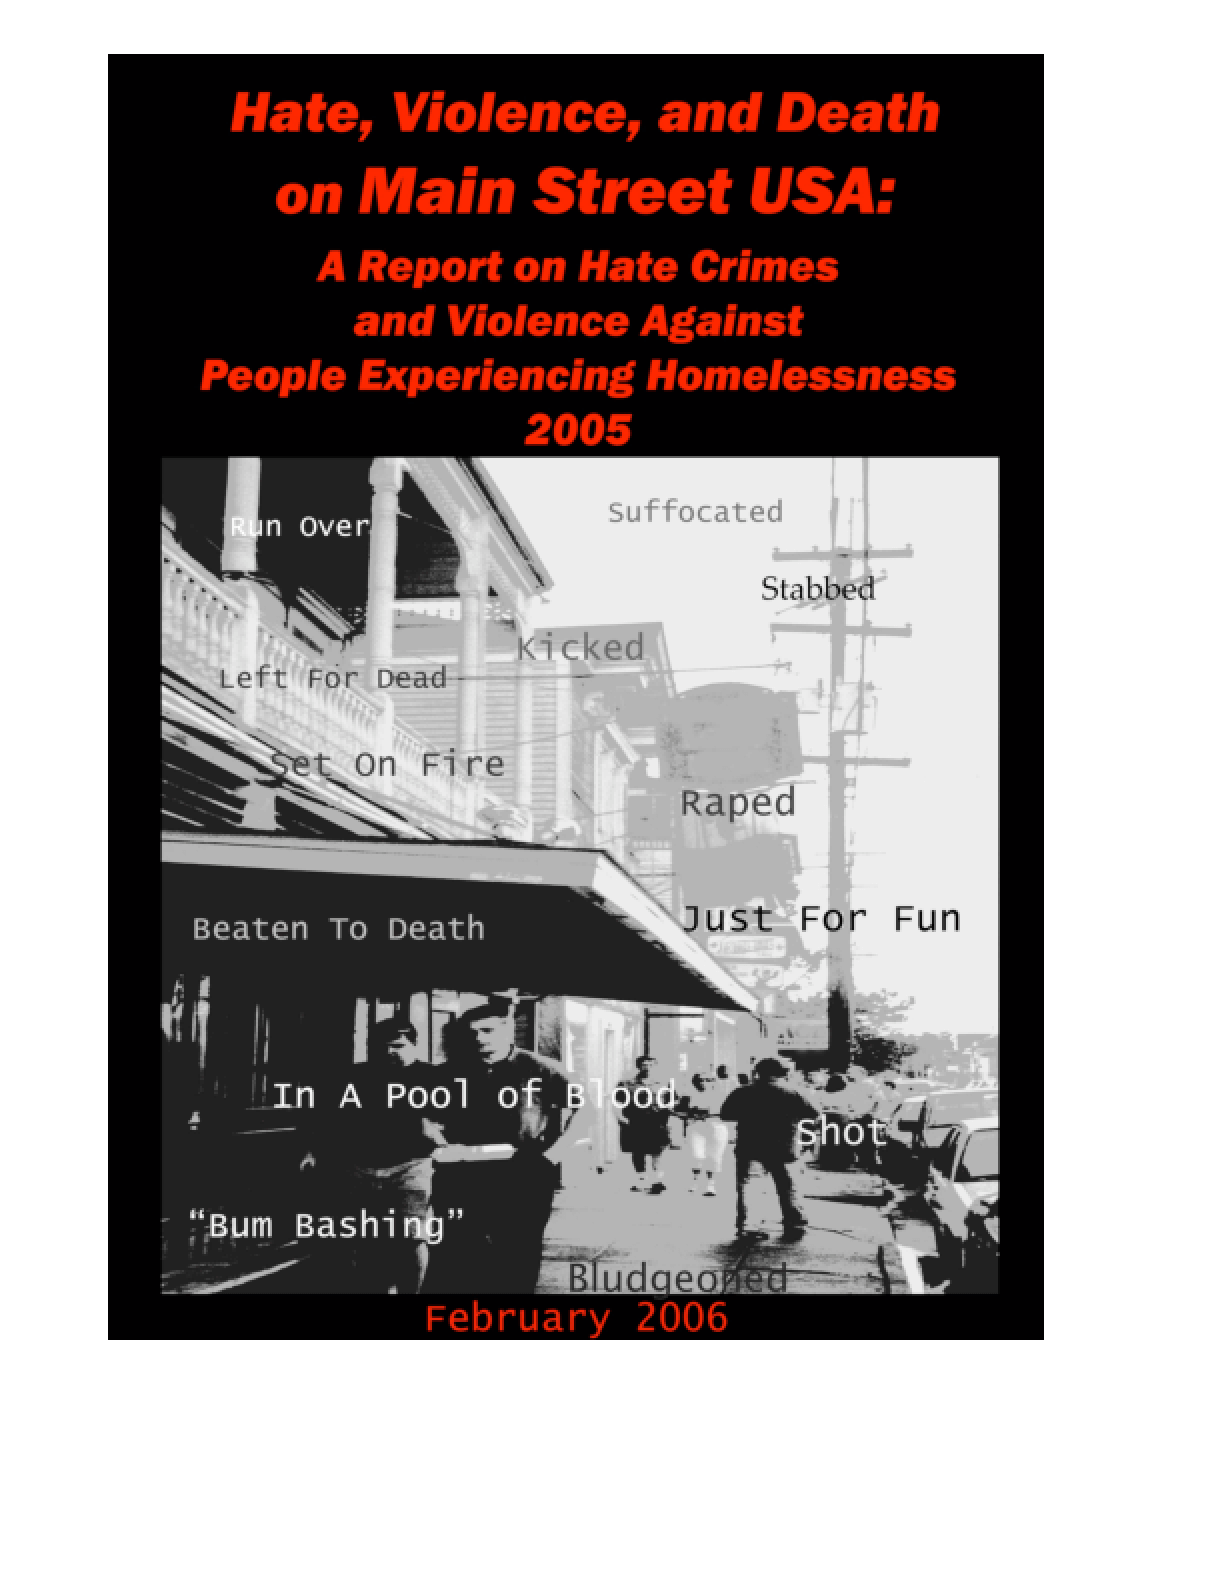 Hate Crimes and Violence Against People Experiencing Homelessness 2005